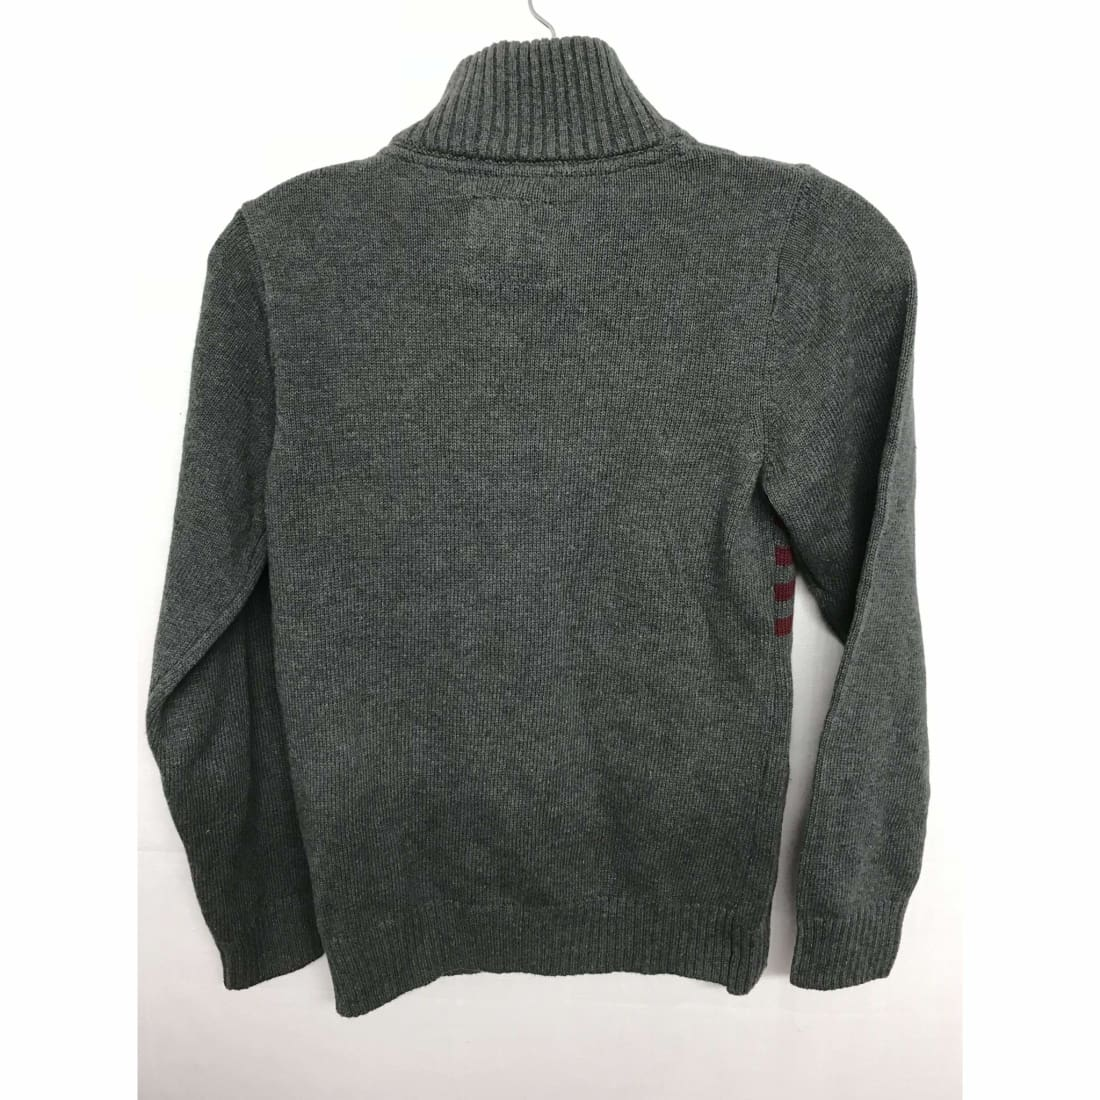 Calvin Klein Boys 1/4 Zip Knit Pullover Sweater 100% Cotton Sweaters